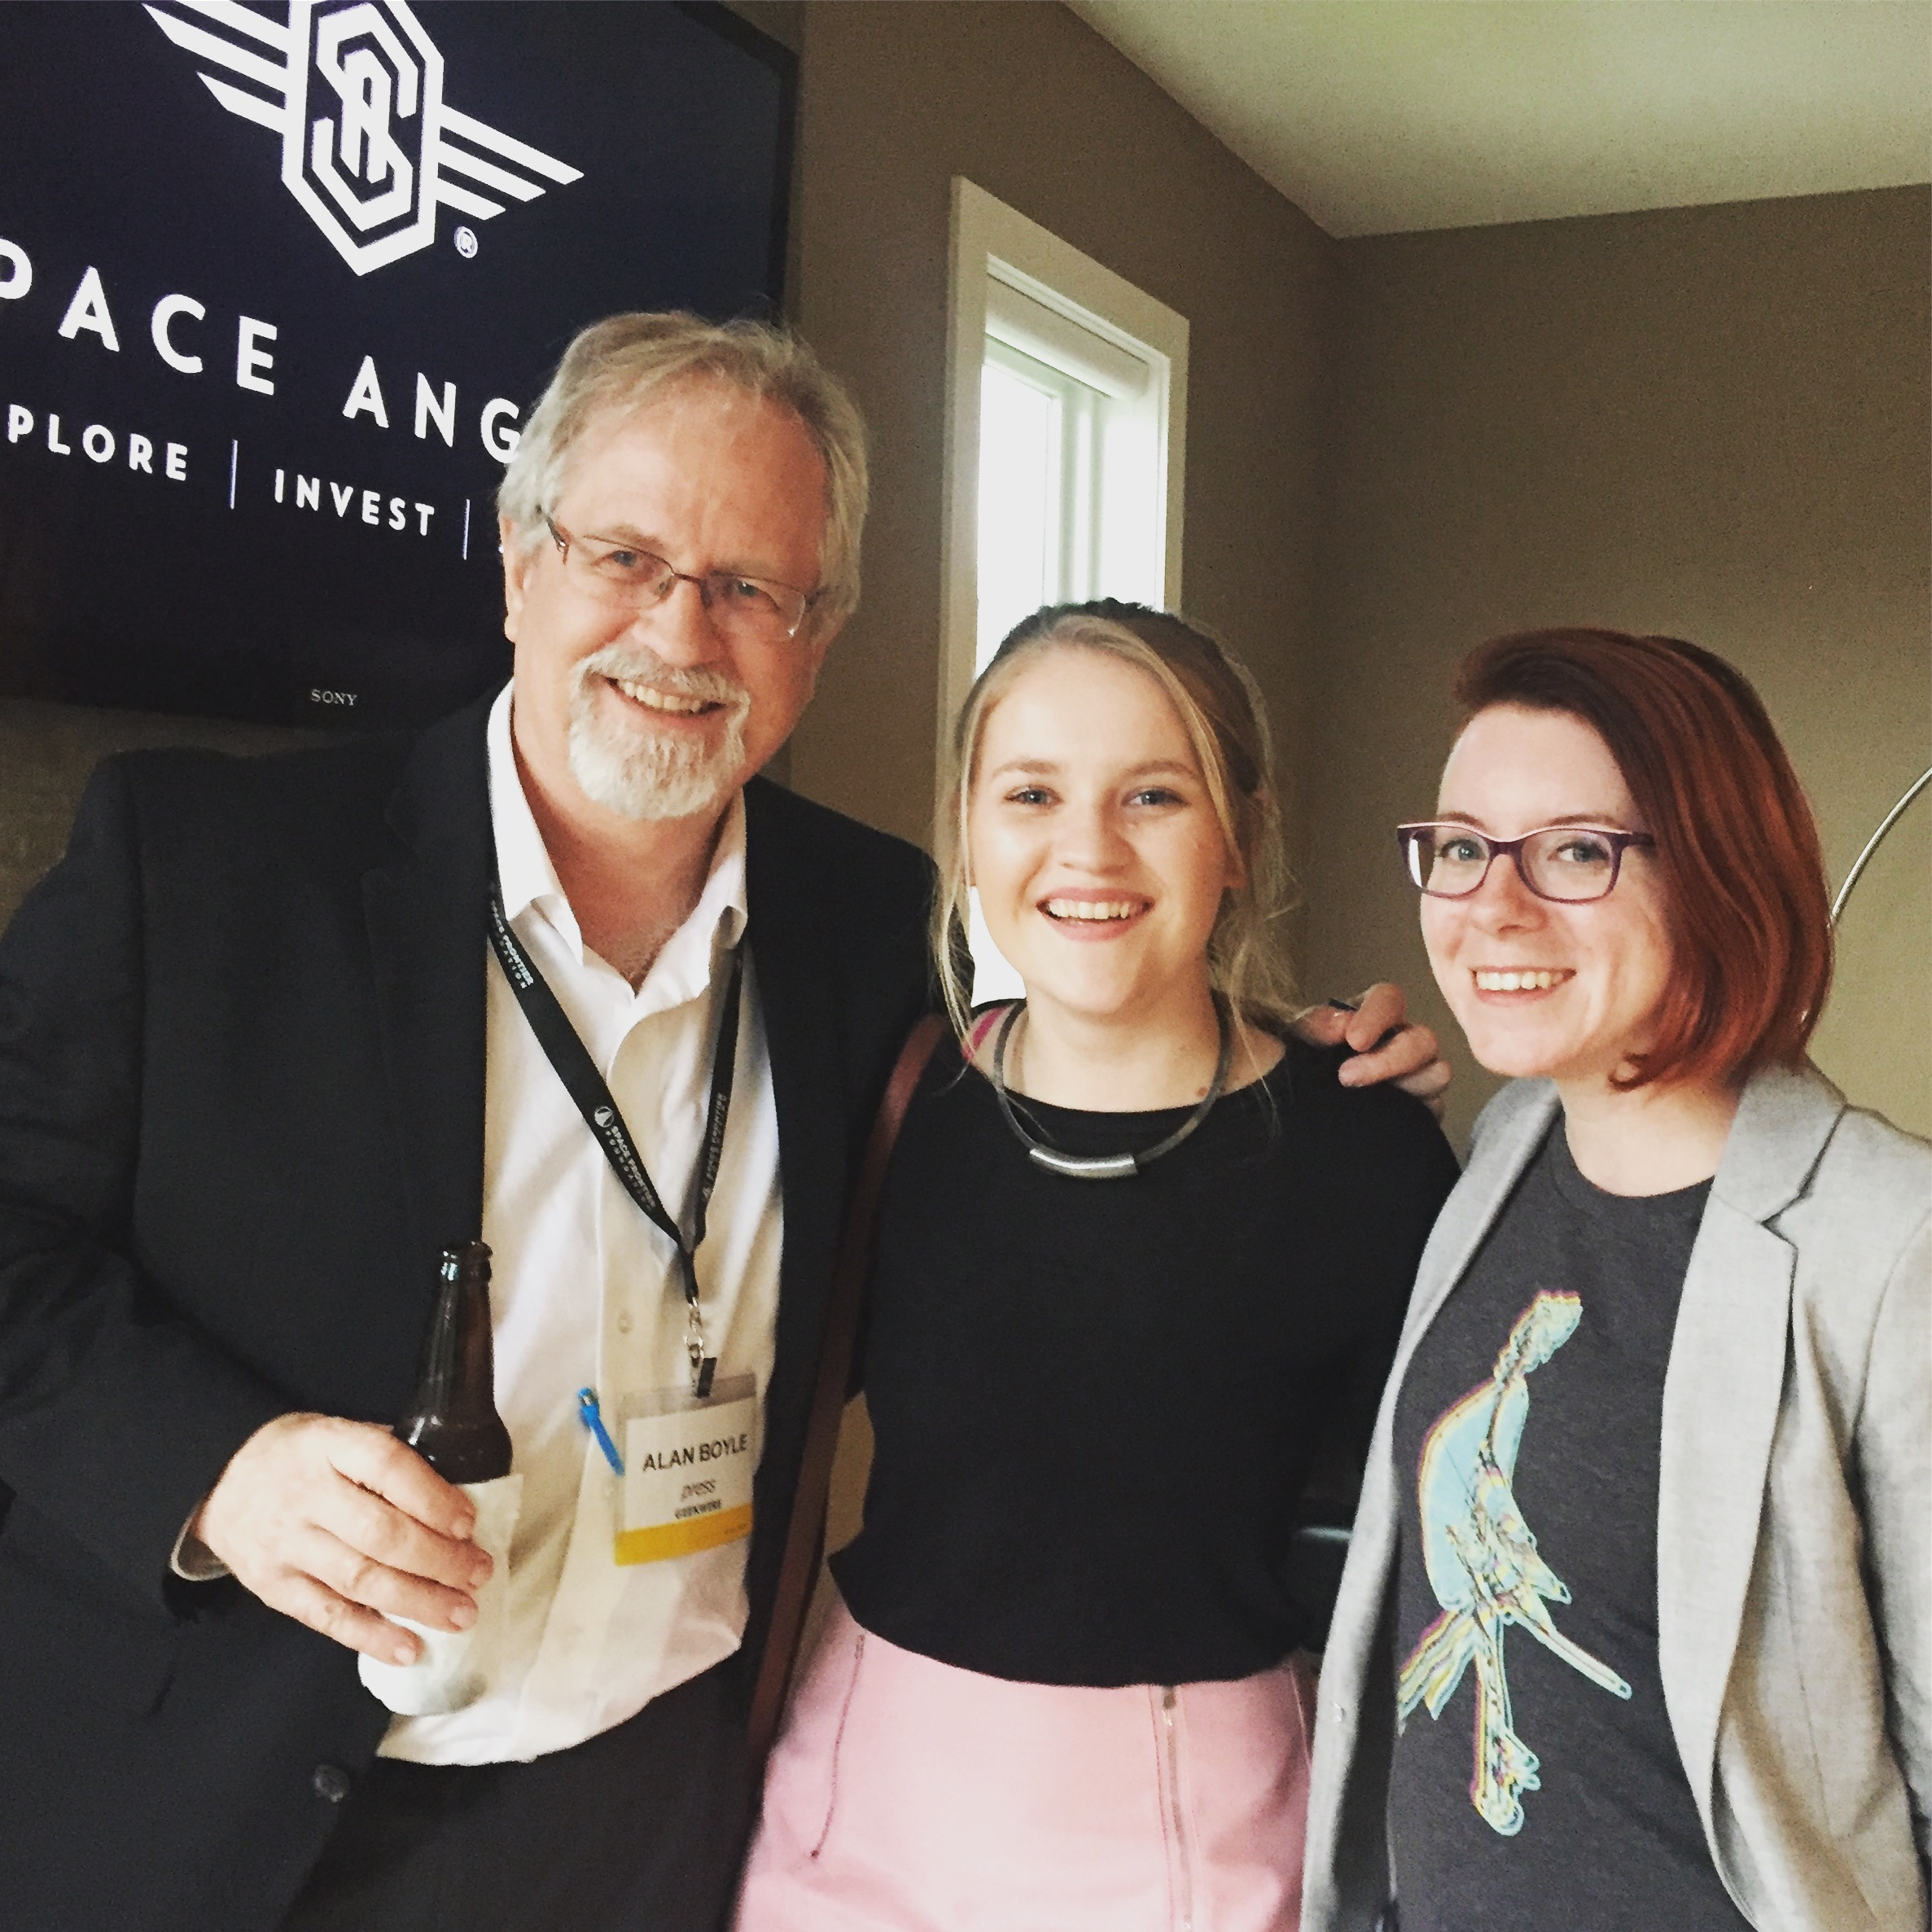 Me with Alan Boyle (@b0yle) and Dr, Tanya Harrison (@tanyaofmars) at an after party hosted by  Space Angels  for the NewSpace Conference held in Seattle